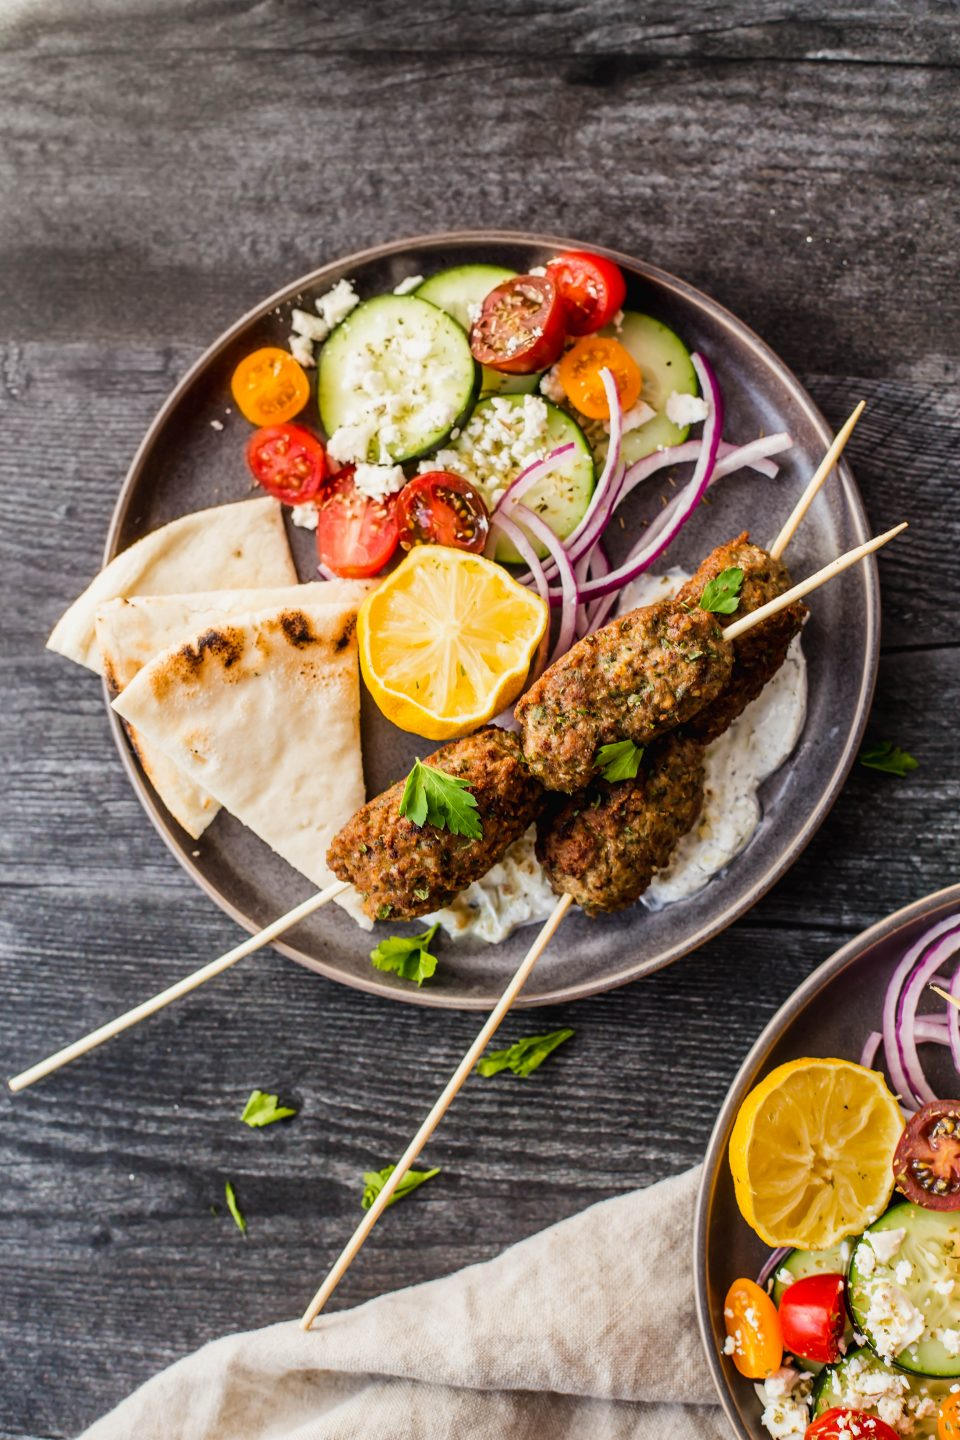 An overhead shot of a dark gray plate on a dark background. There are gluten-free greek lamb meatballs on wooden skewers on each plate. Around the skewers are chopped tomatoes, cucumbers, feta cheese, pita bread and lemons.